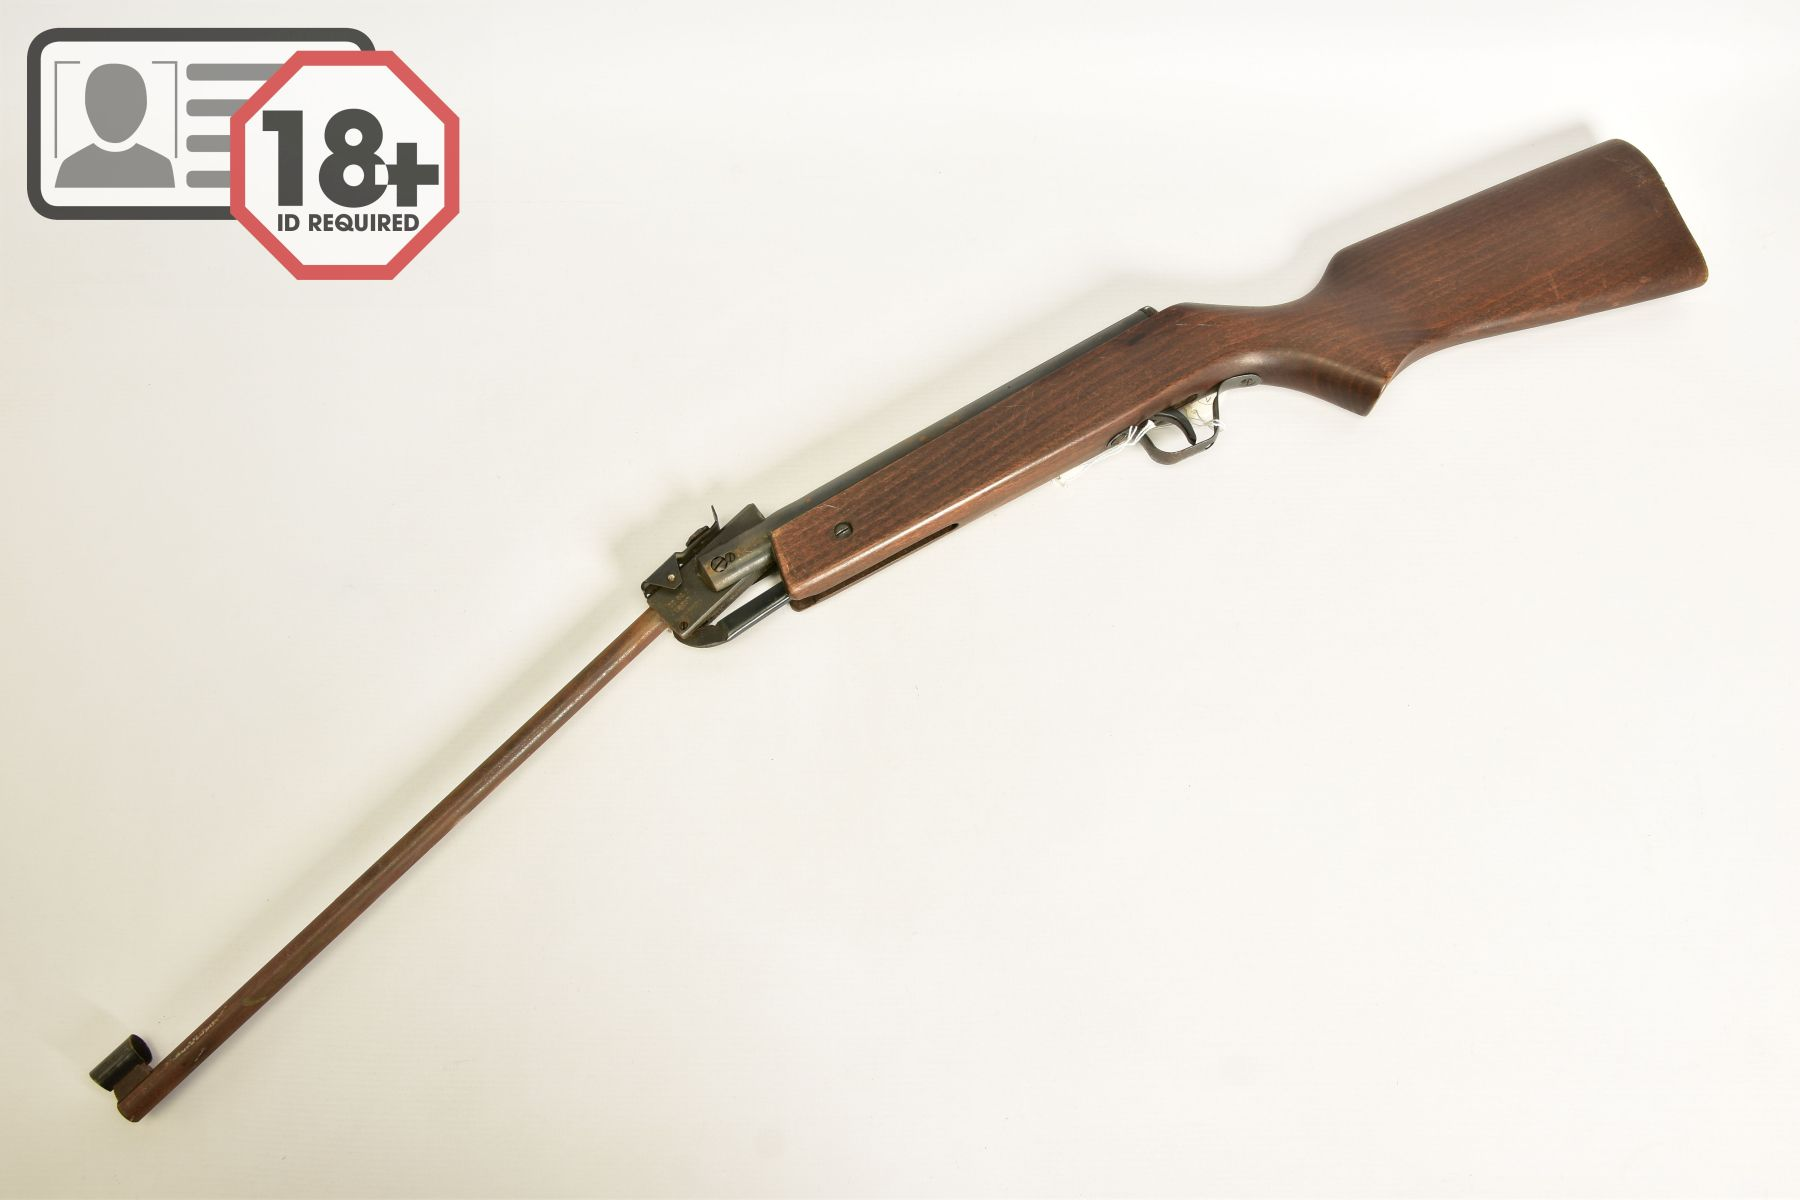 A .22'' BREAK ACTION SPRING AIR RIFLE, serial number 05 88 g in working order marked 'Made in